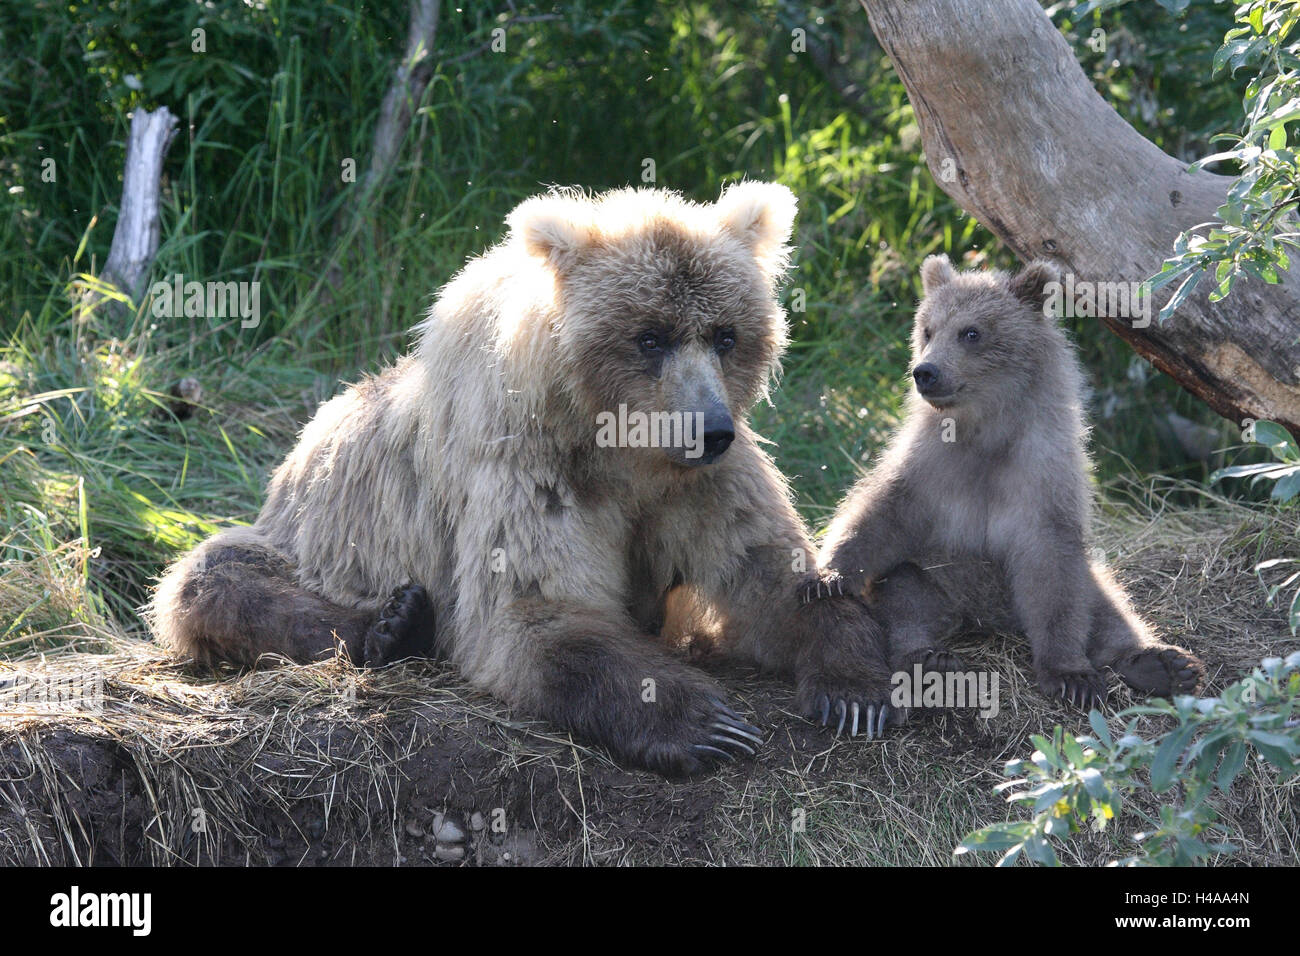 Grizzly bears, she-bear, young animal, - Stock Image